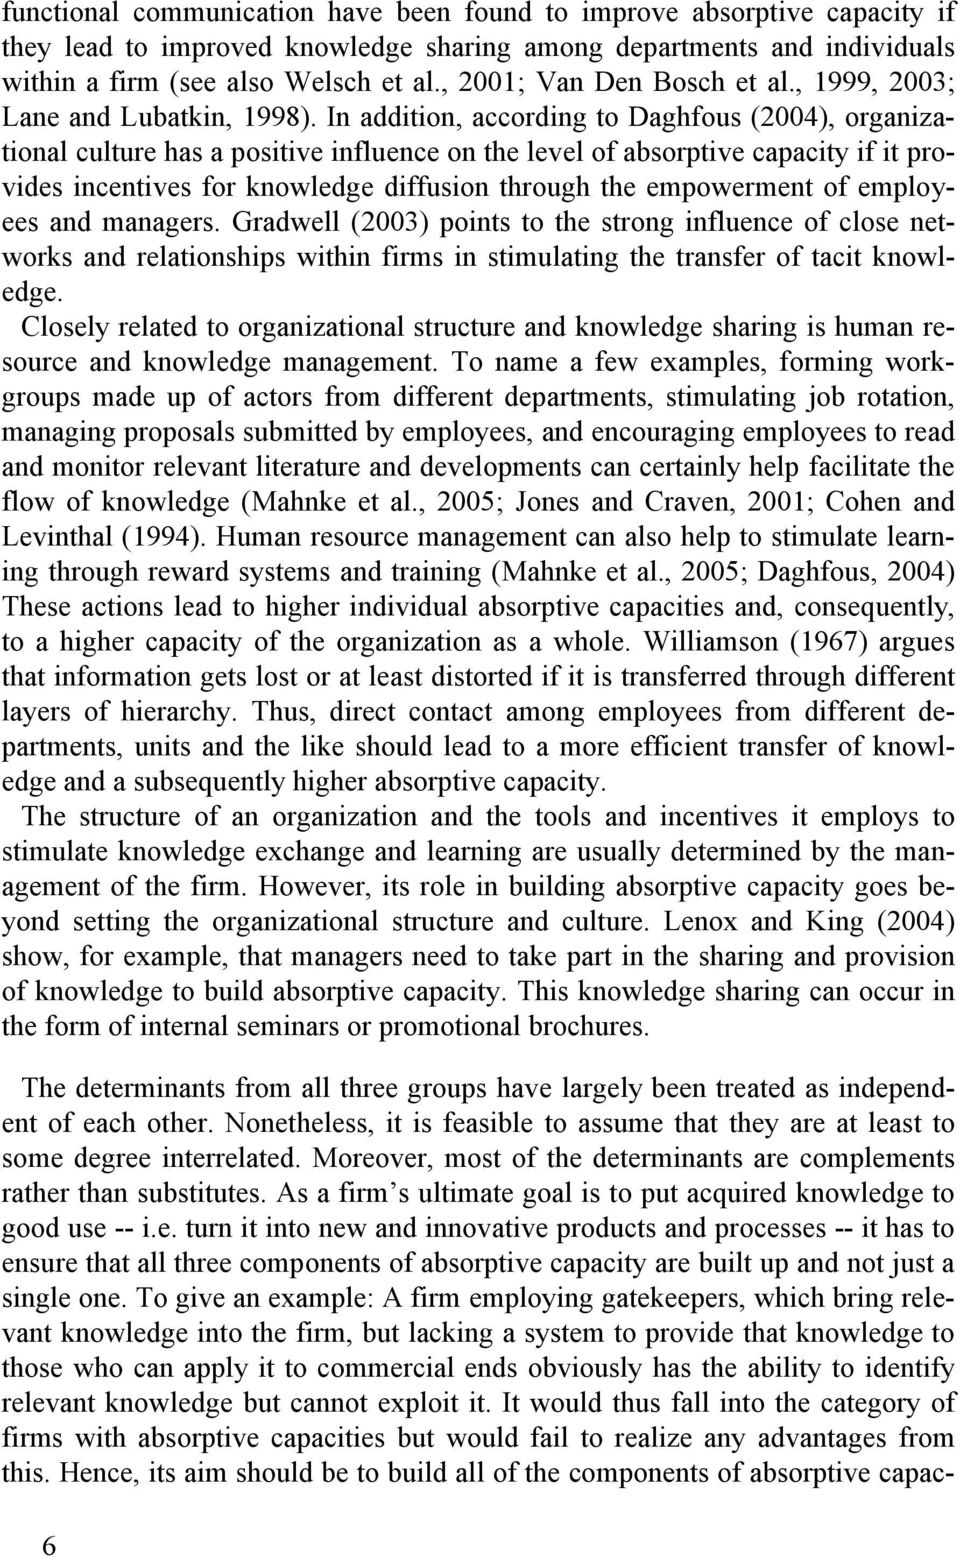 In addition, according to Daghfous (2004), organizational culture has a positive influence on the level of absorptive capacity if it provides incentives for knowledge diffusion through the